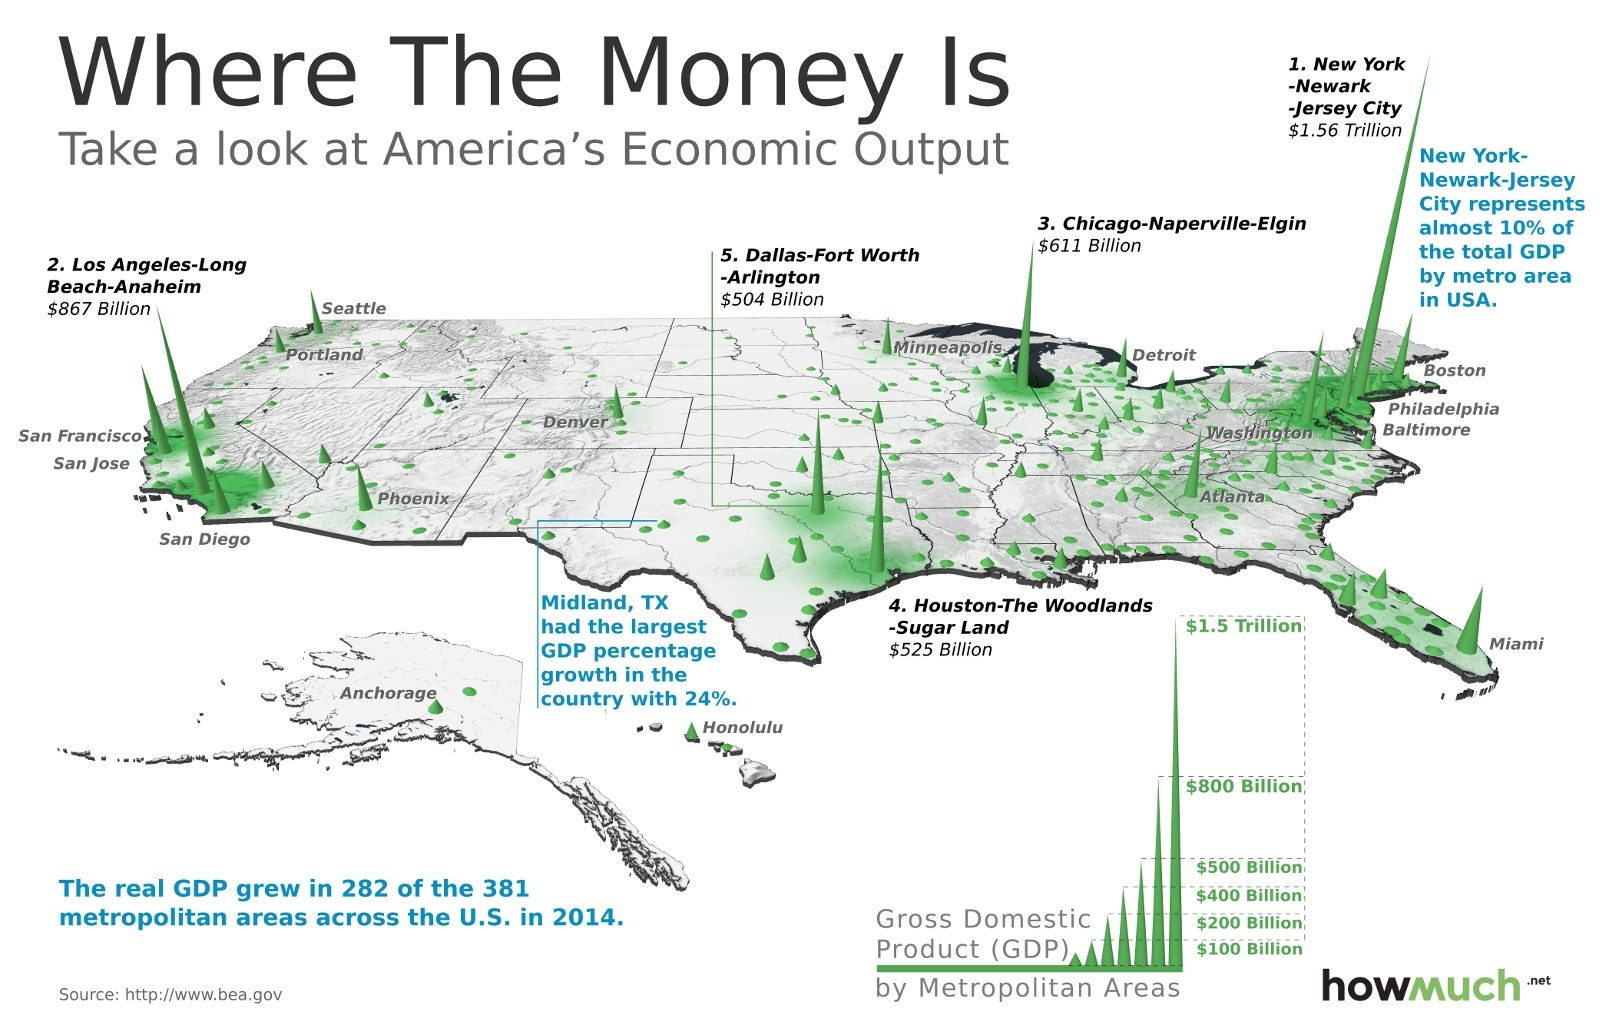 where the money is by gdp